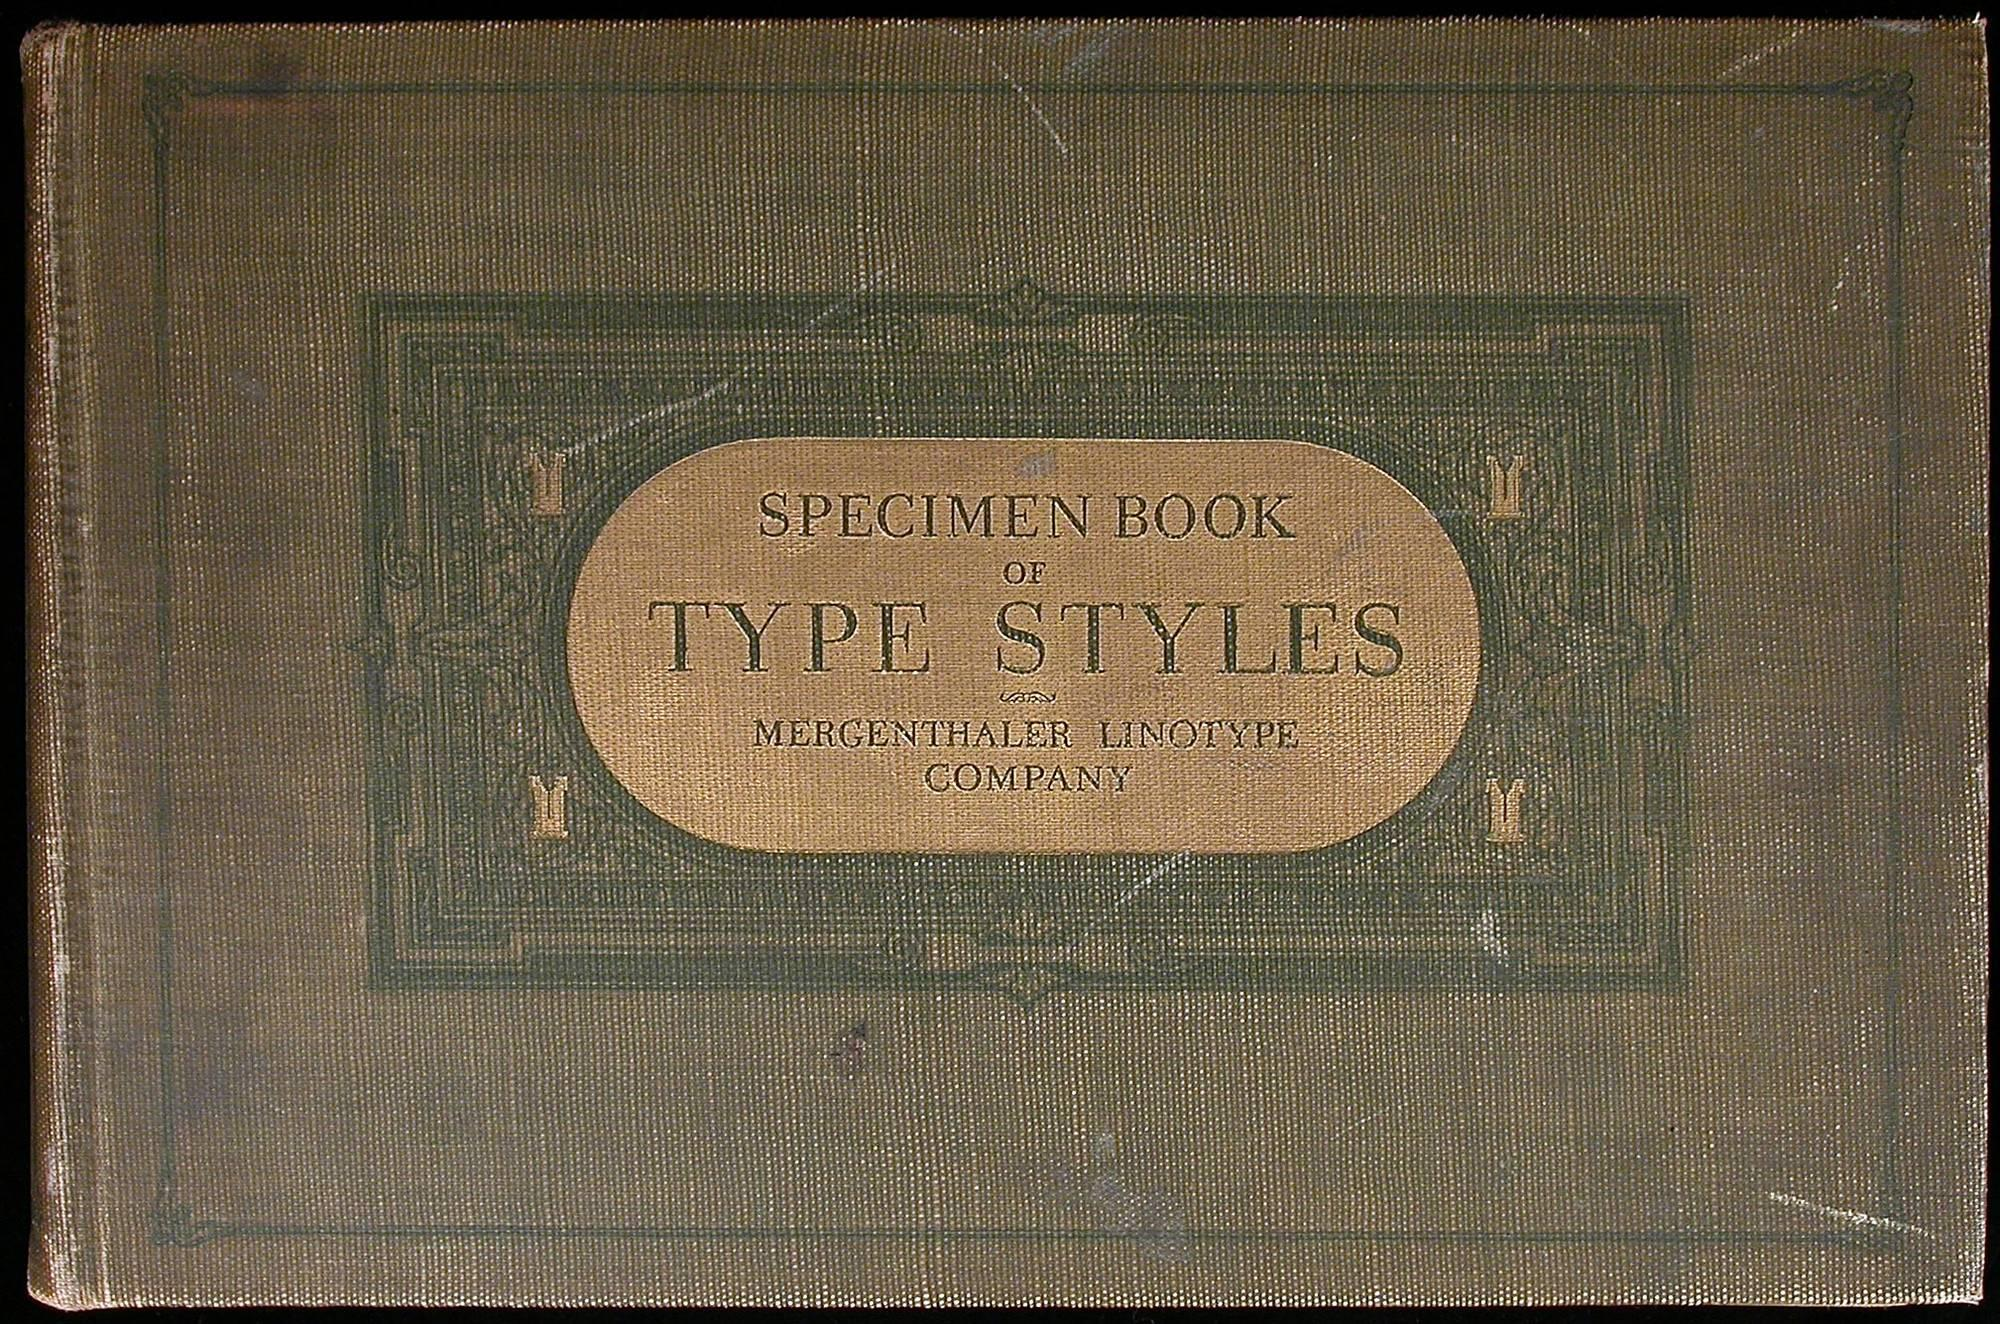 Specimen Book of Type Styles - Price Estimate: $200 - $300